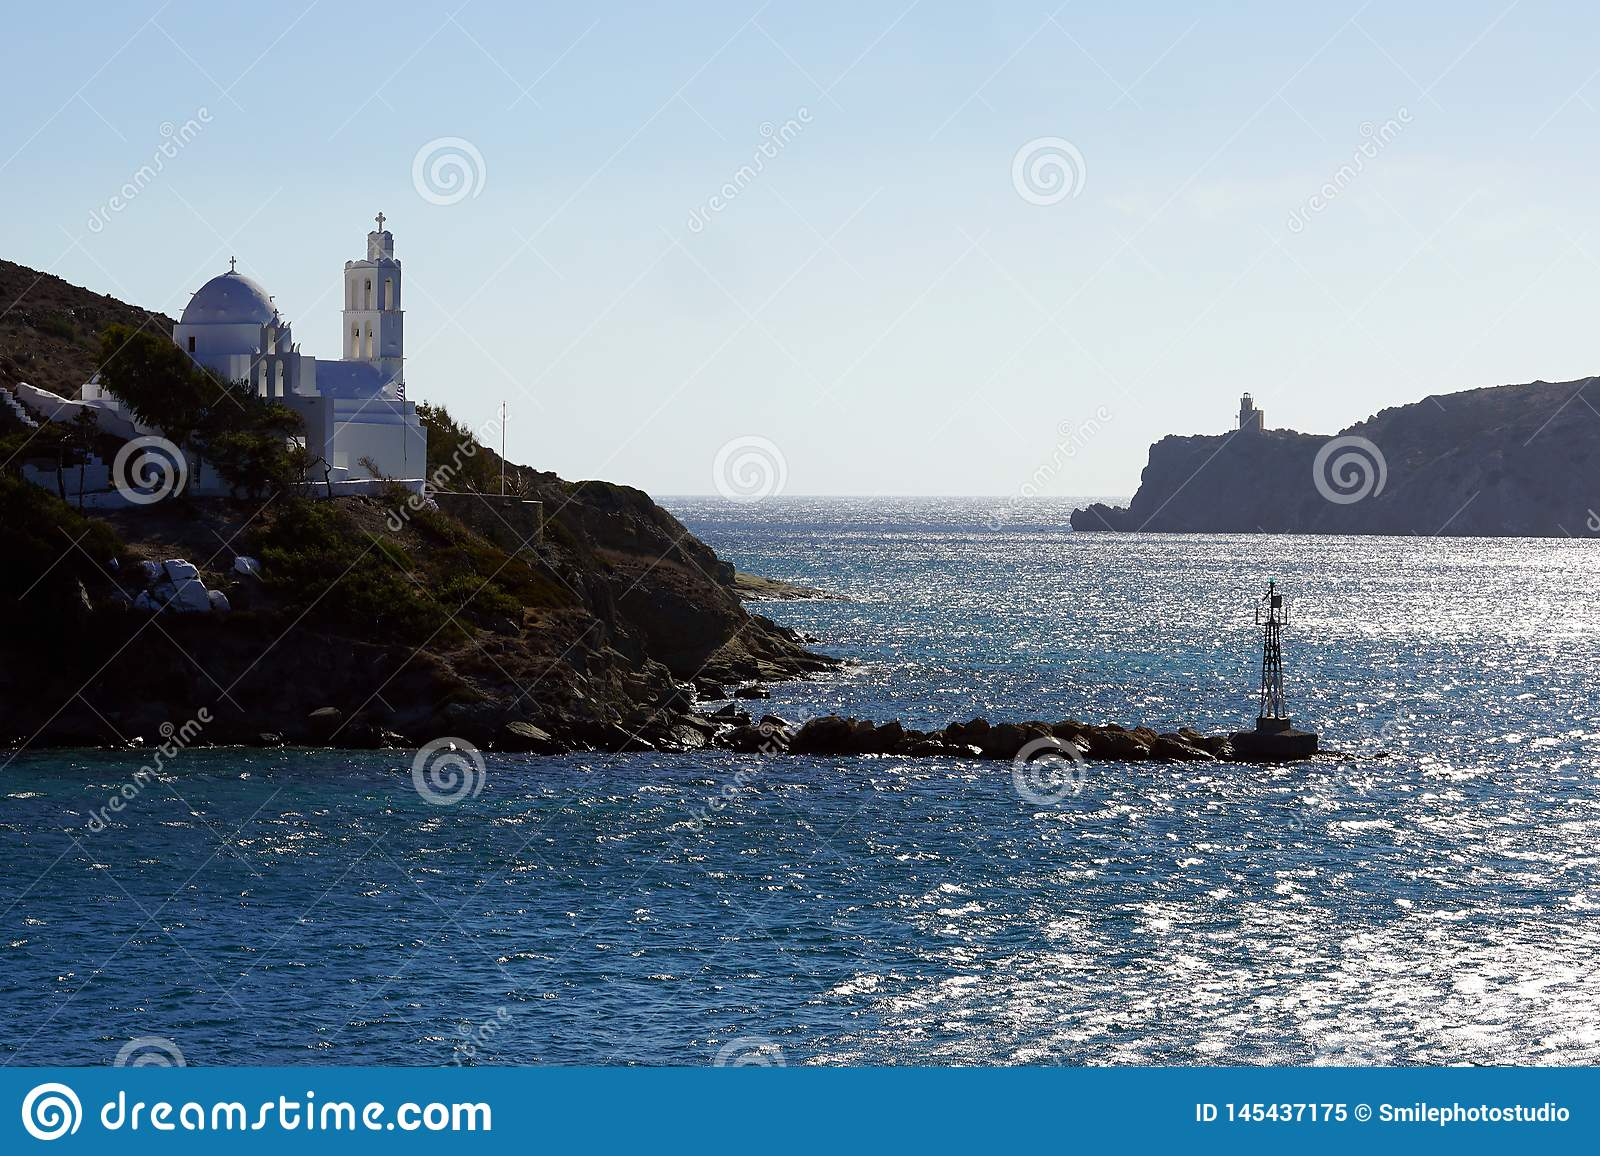 View of the entrance to the port of Ios with its lighthouse and the church of Saint Irene